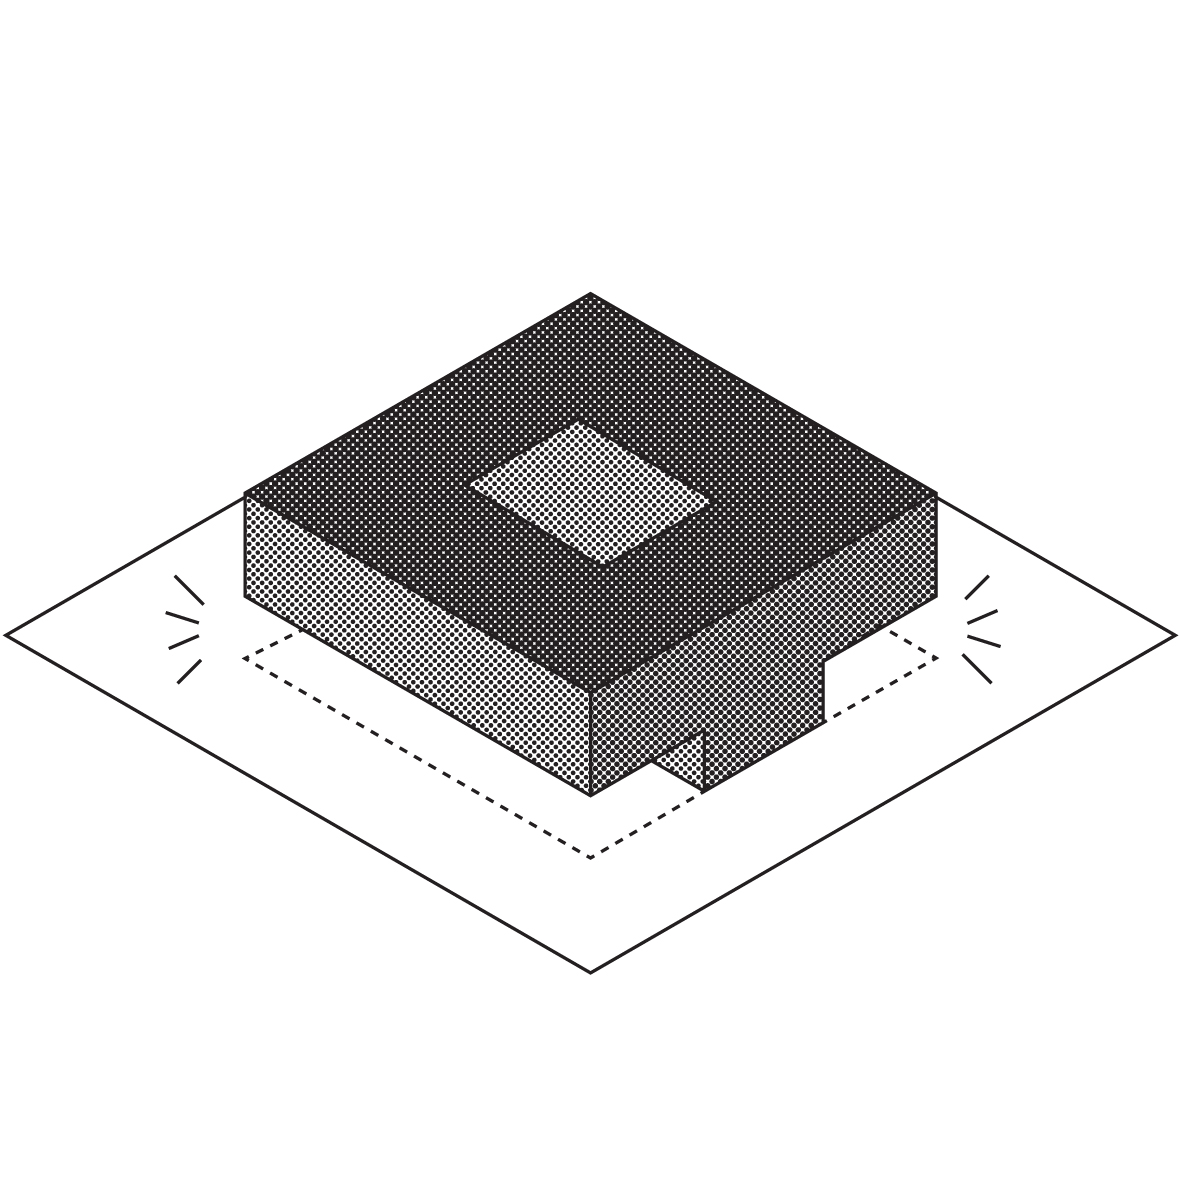 Proposal : office building lifted up + new common spaces